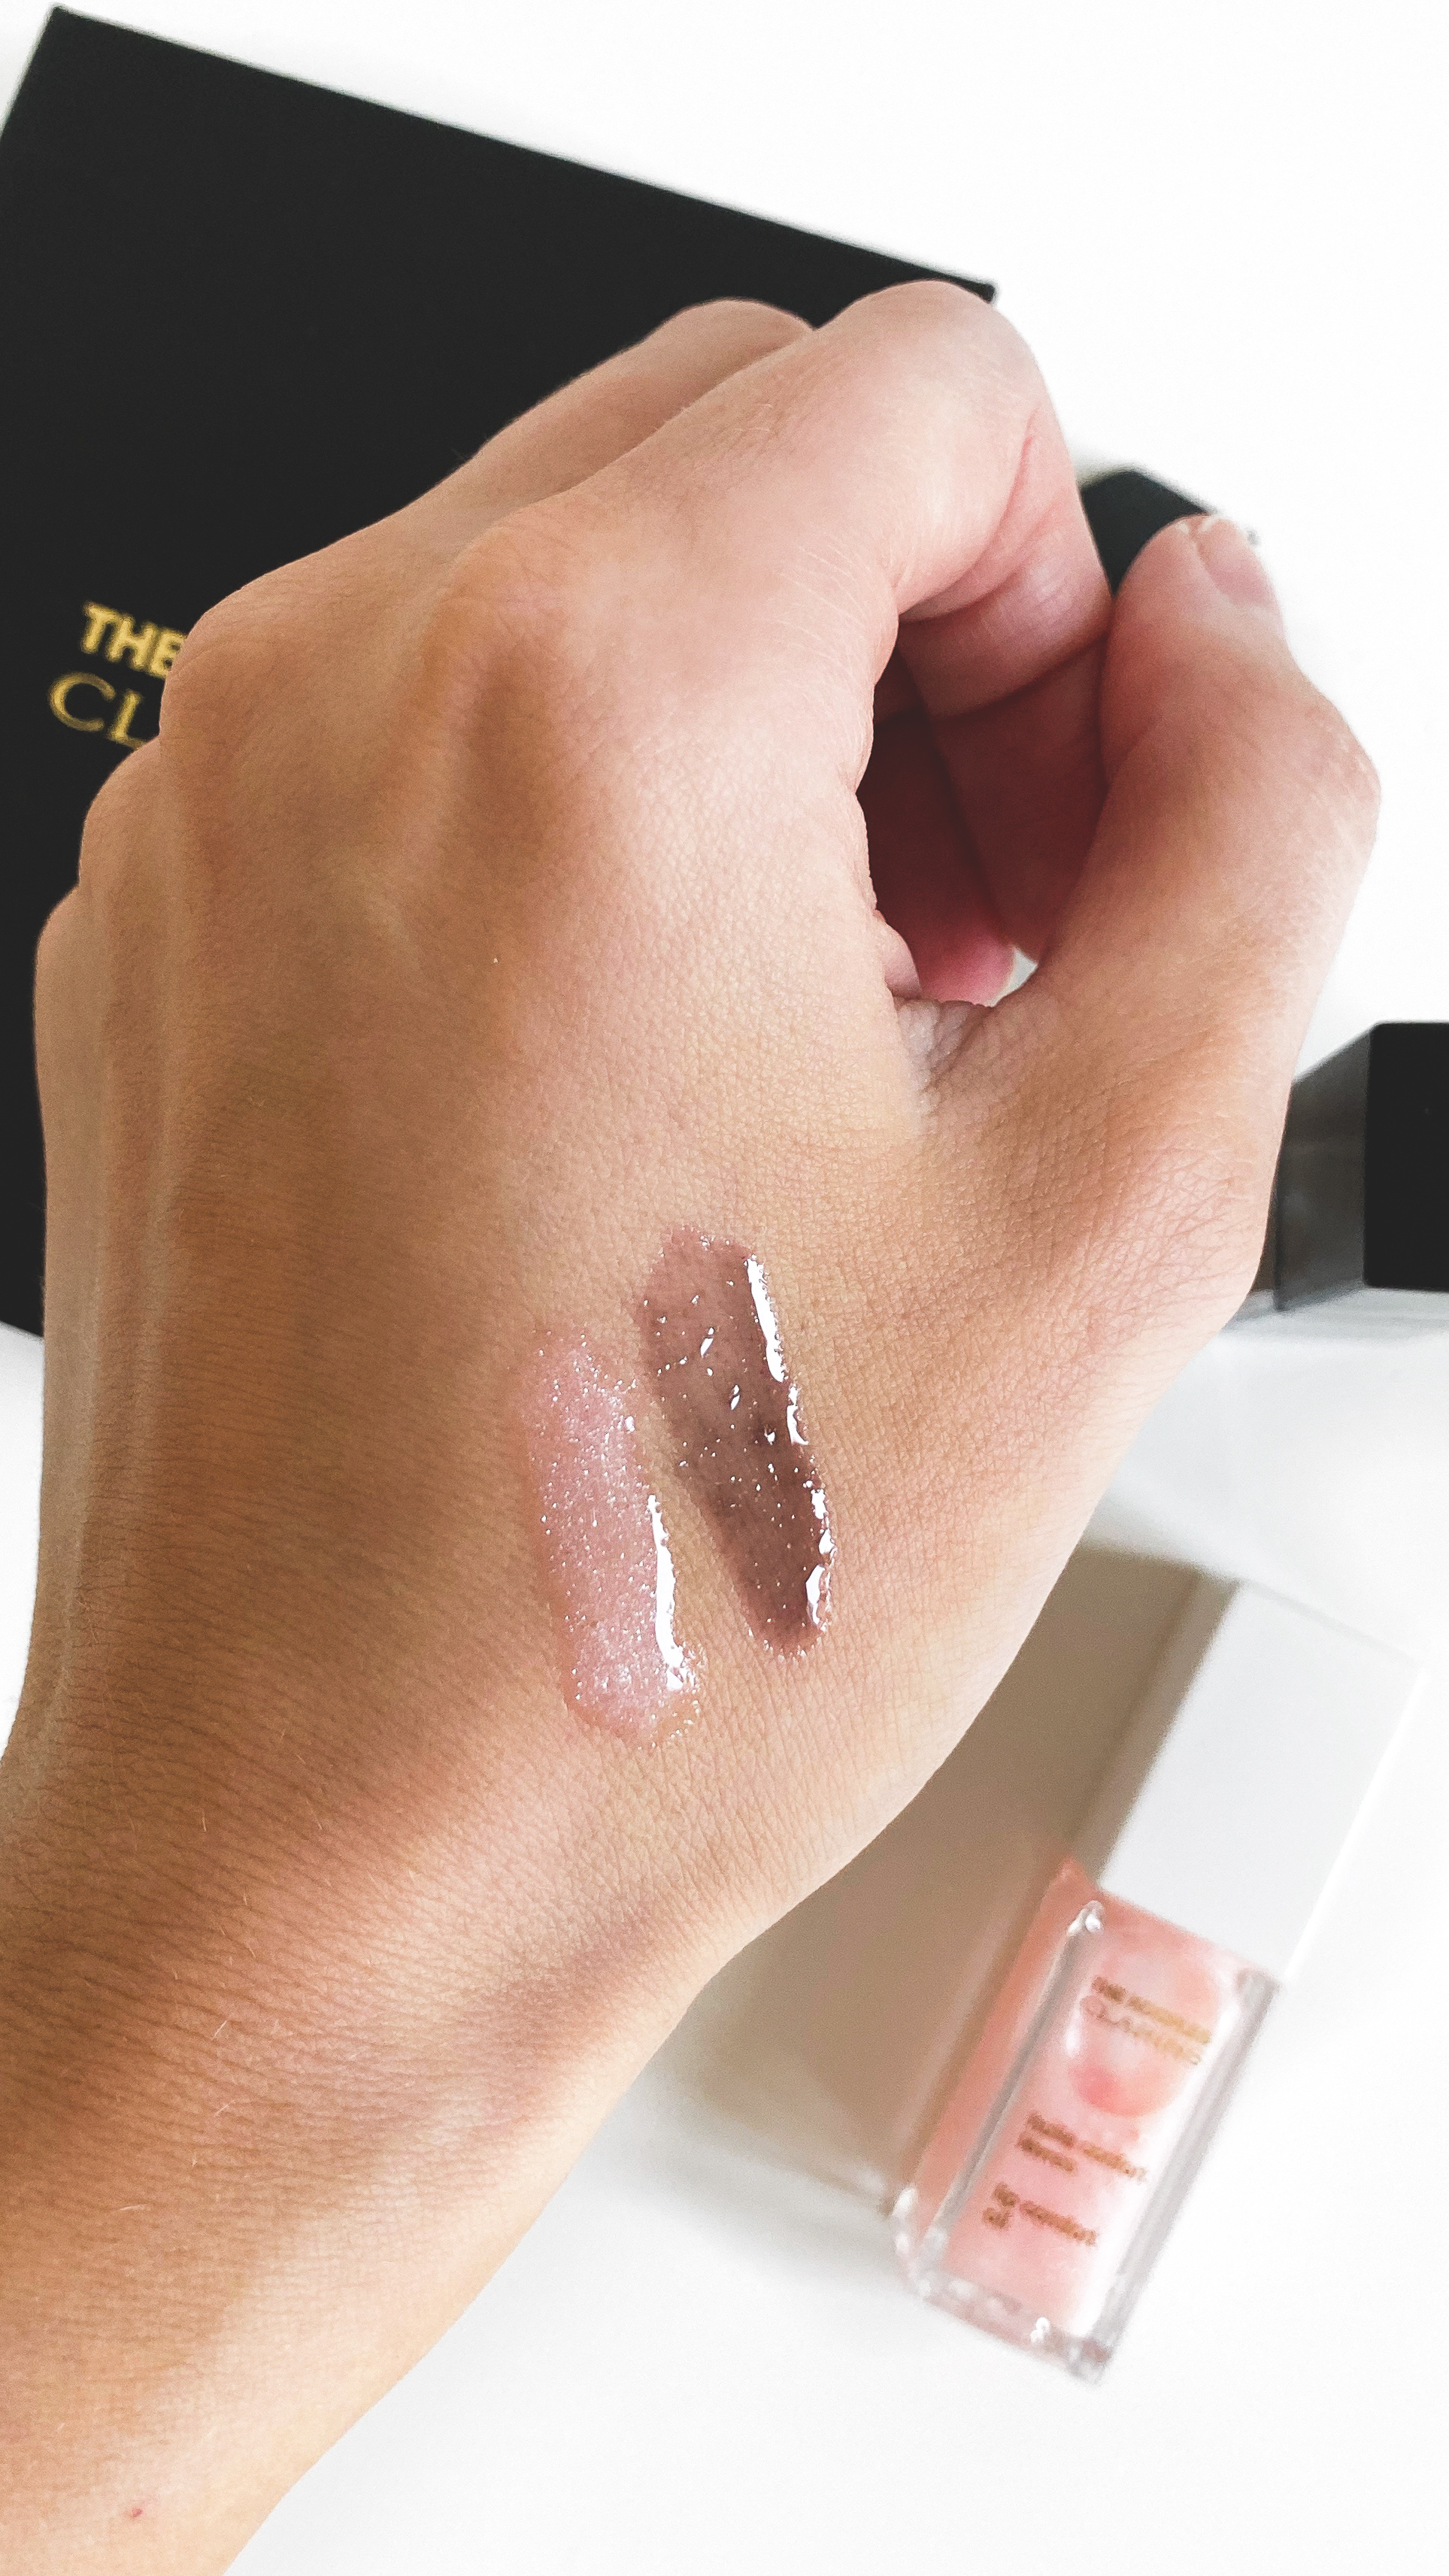 Clarins x The Kooples Comfort Lip Oils Swatch - The LDN Diarie